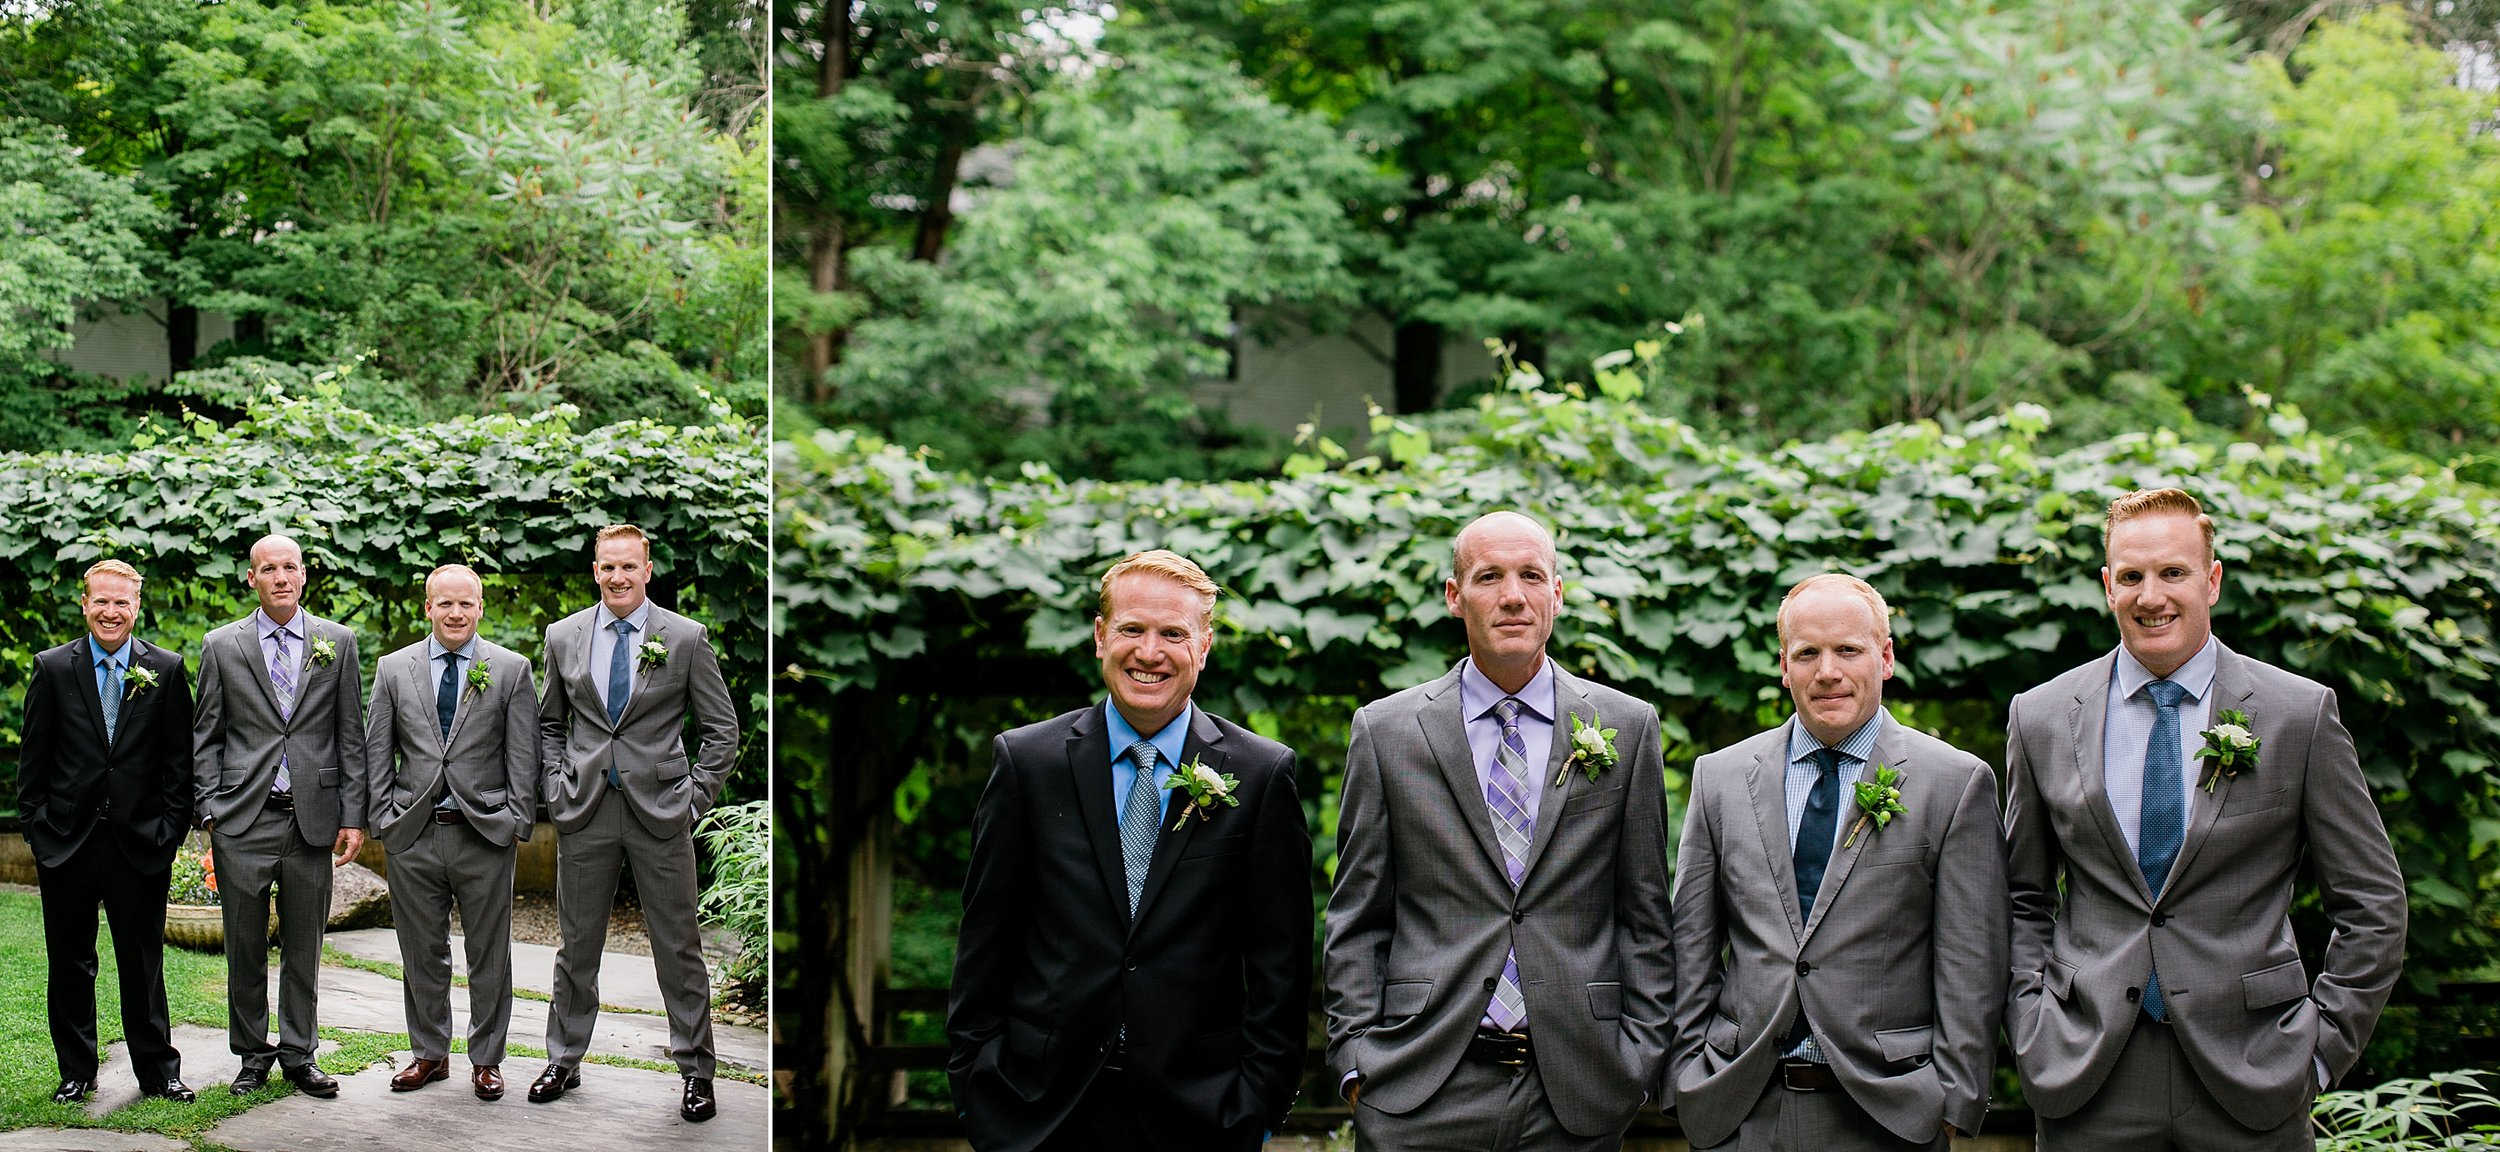 019-los-angeles-wedding-photography-todd-danforth-vermont.jpg